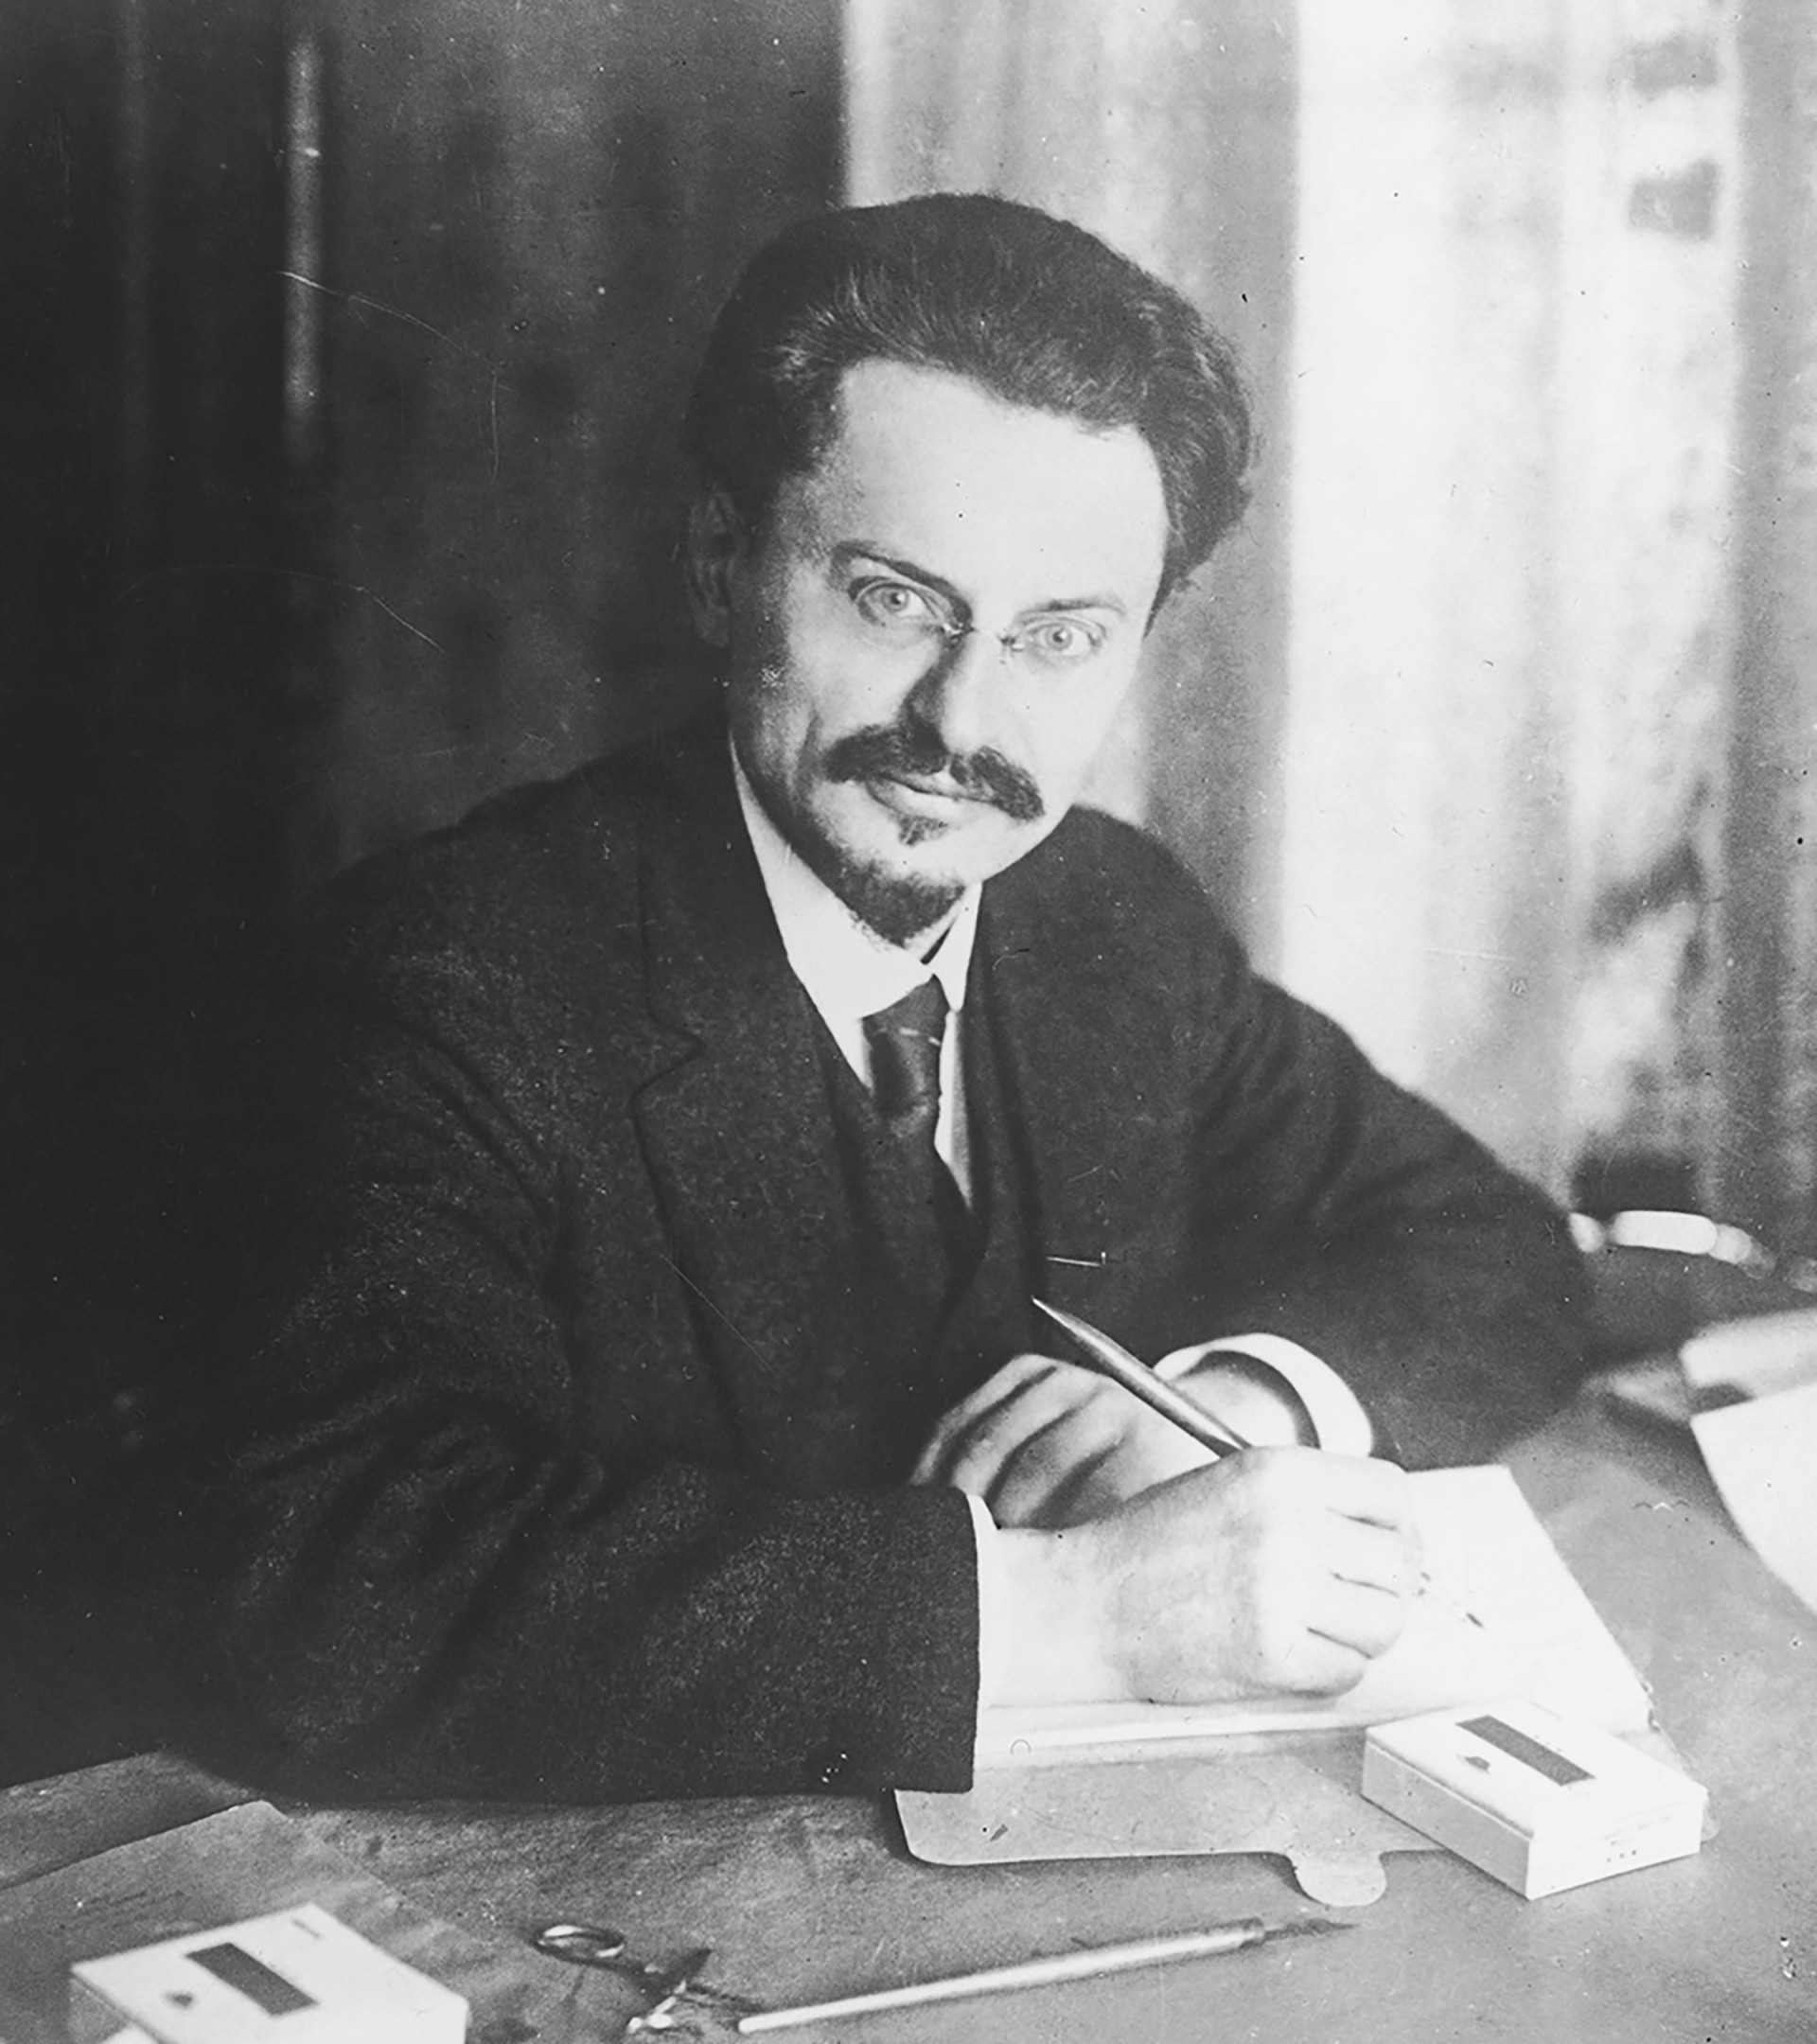 Sudoplatov plotted Trotsky's assassination as well, interrupting the life of an old Communist in exile.